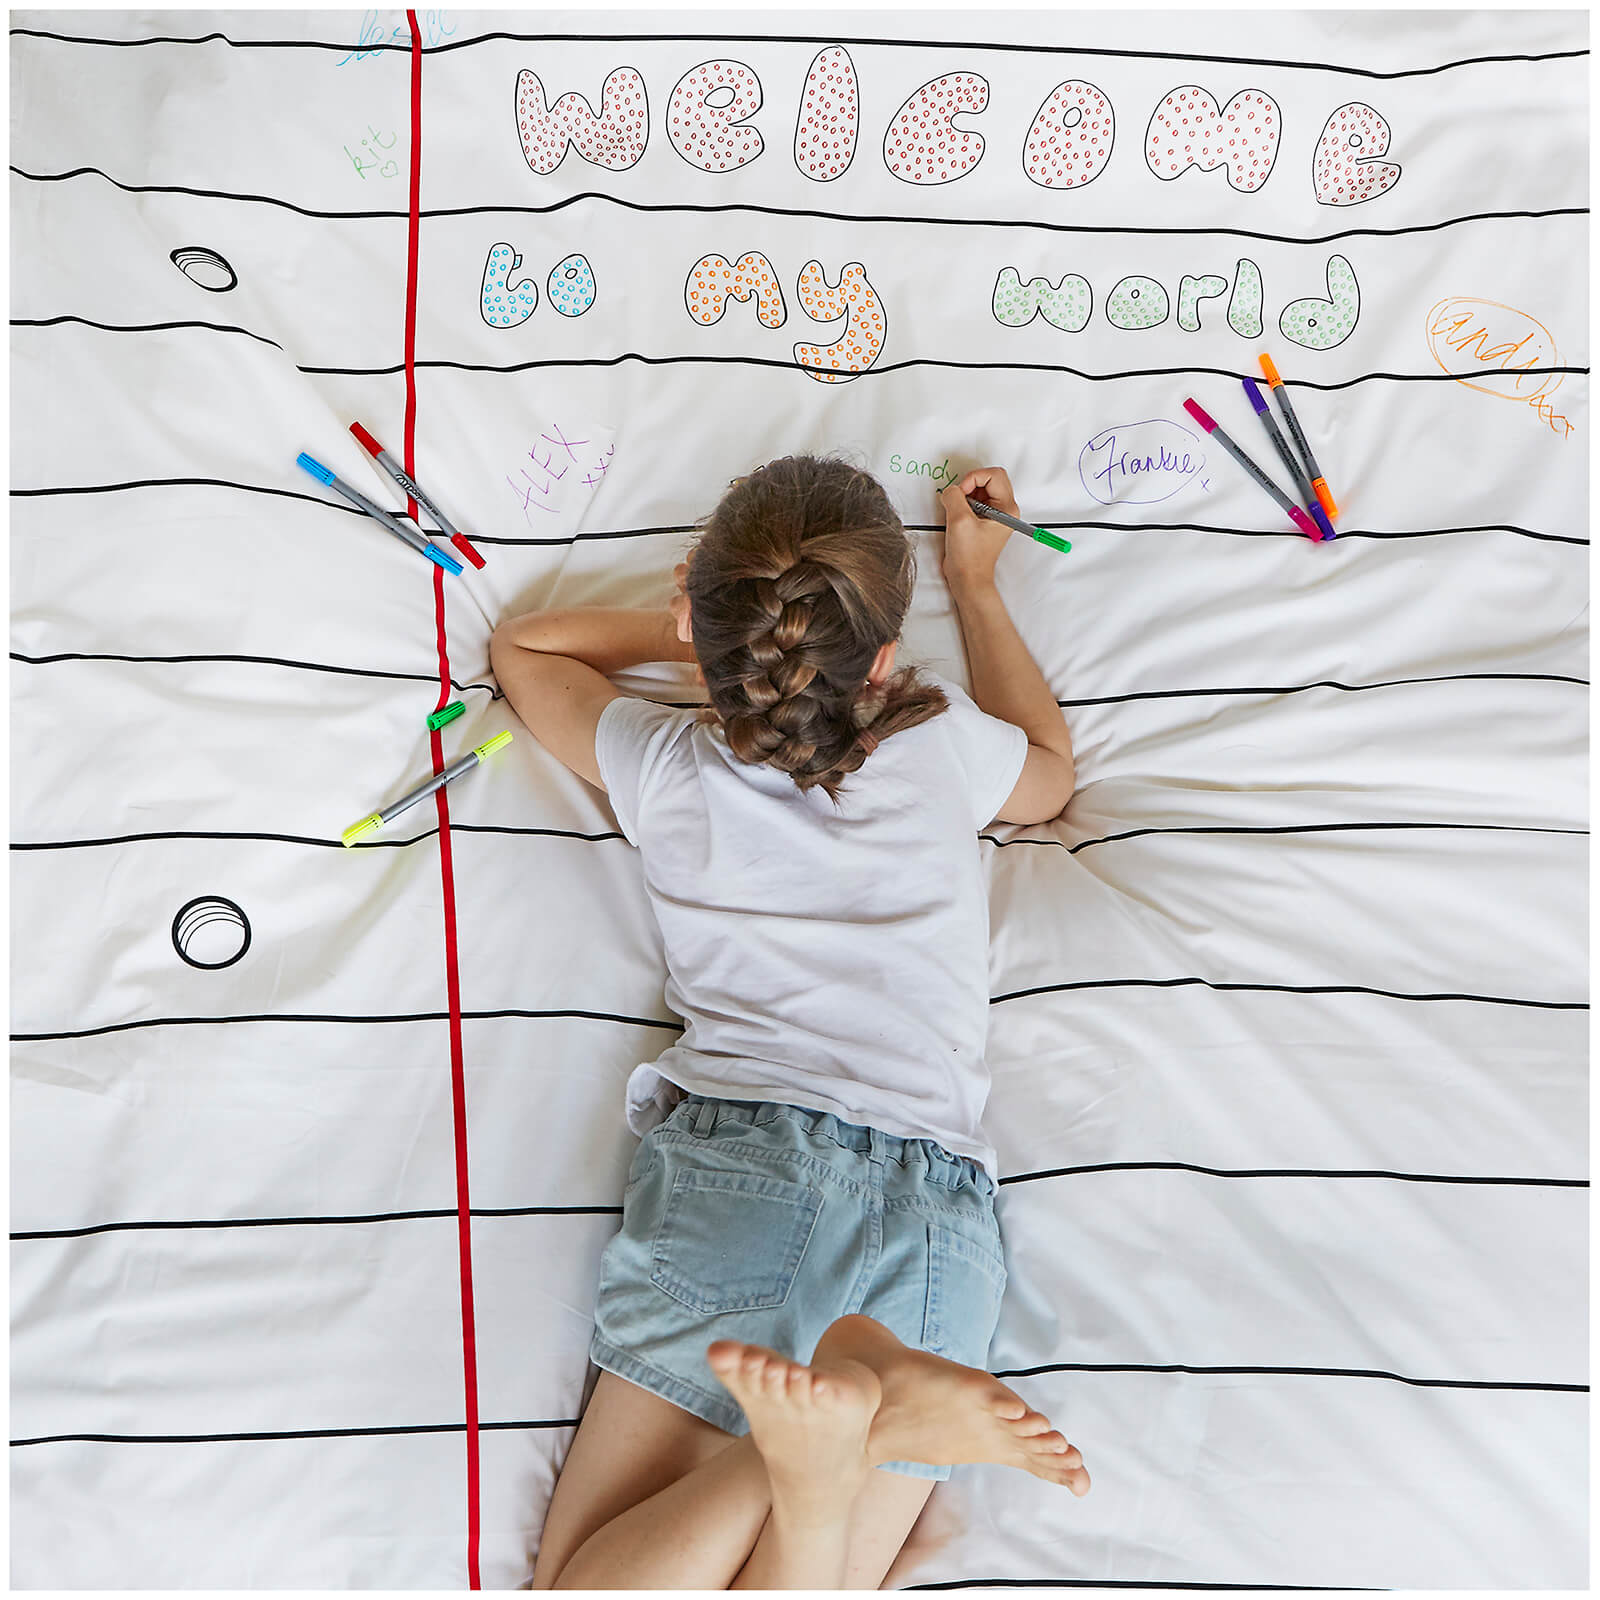 Doodle Duvet Cover - Single with 10 wash out pens